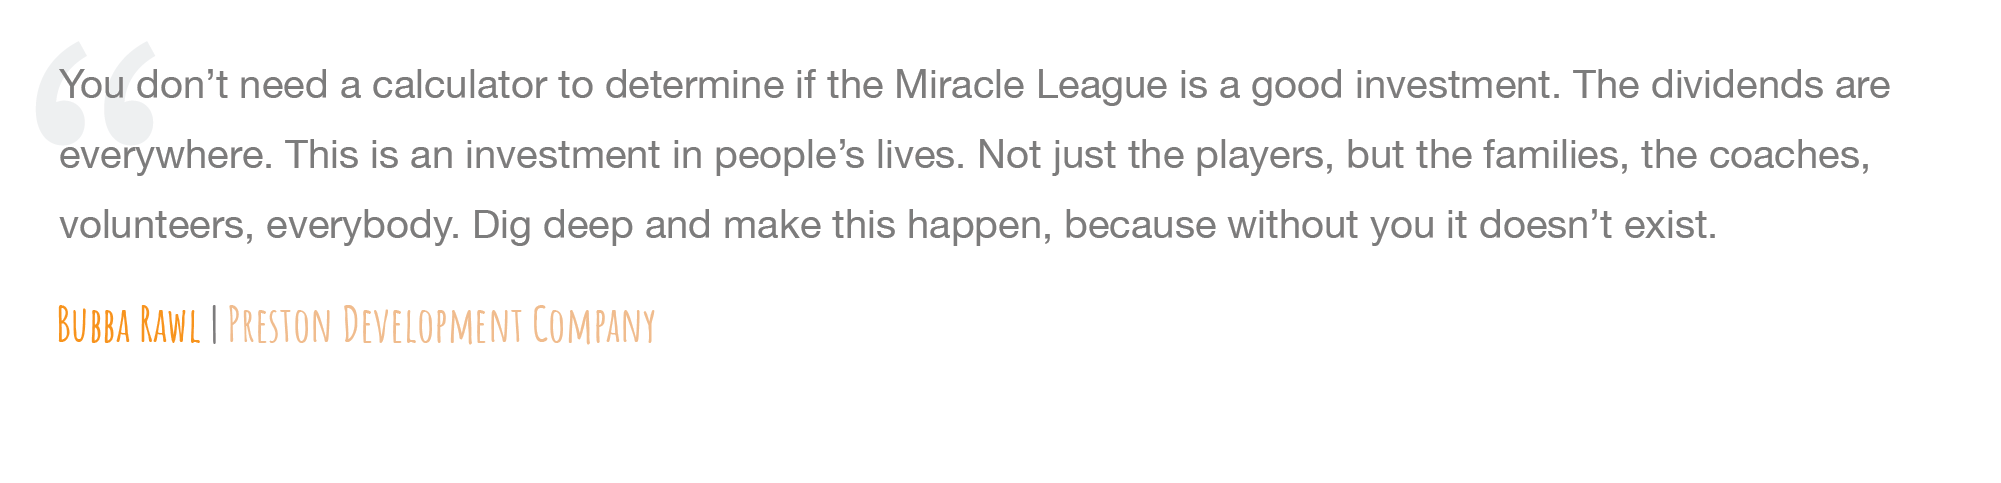 """""""You don't need a calculator to determine if the Miracle League is a good investment. The dividends are everywhere. This is an investment in people's lives. Not just the players, but the families, the coaches, volunteers, everybody. Dig deep and make this happen, because without you it doesn't exist."""" - Bubba Rawl, Preston Development Company"""